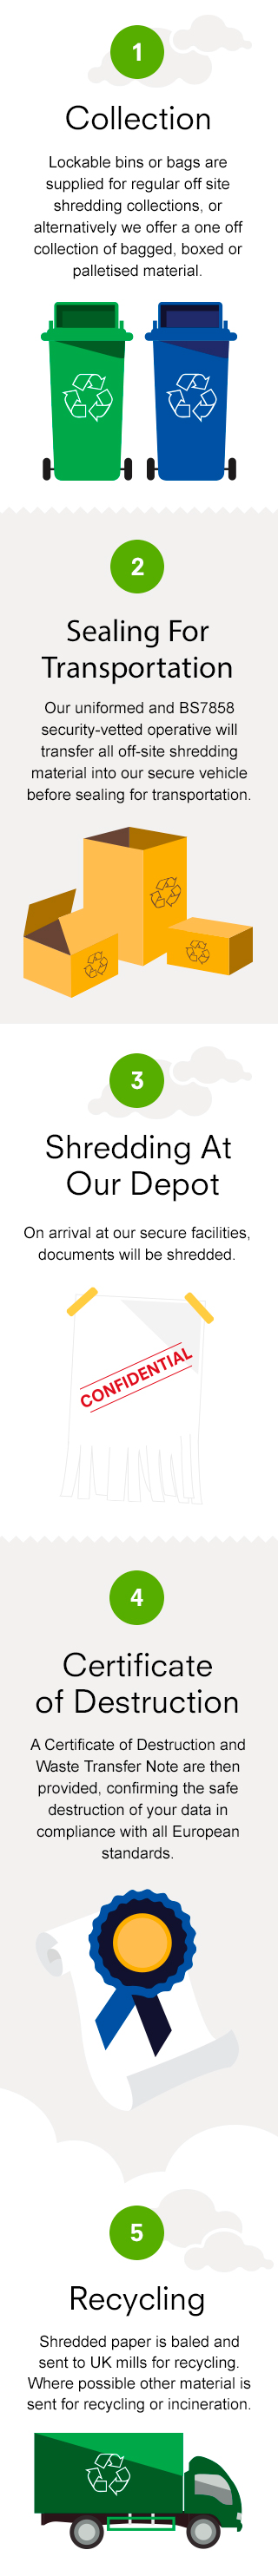 Off-site Shredding Infographic